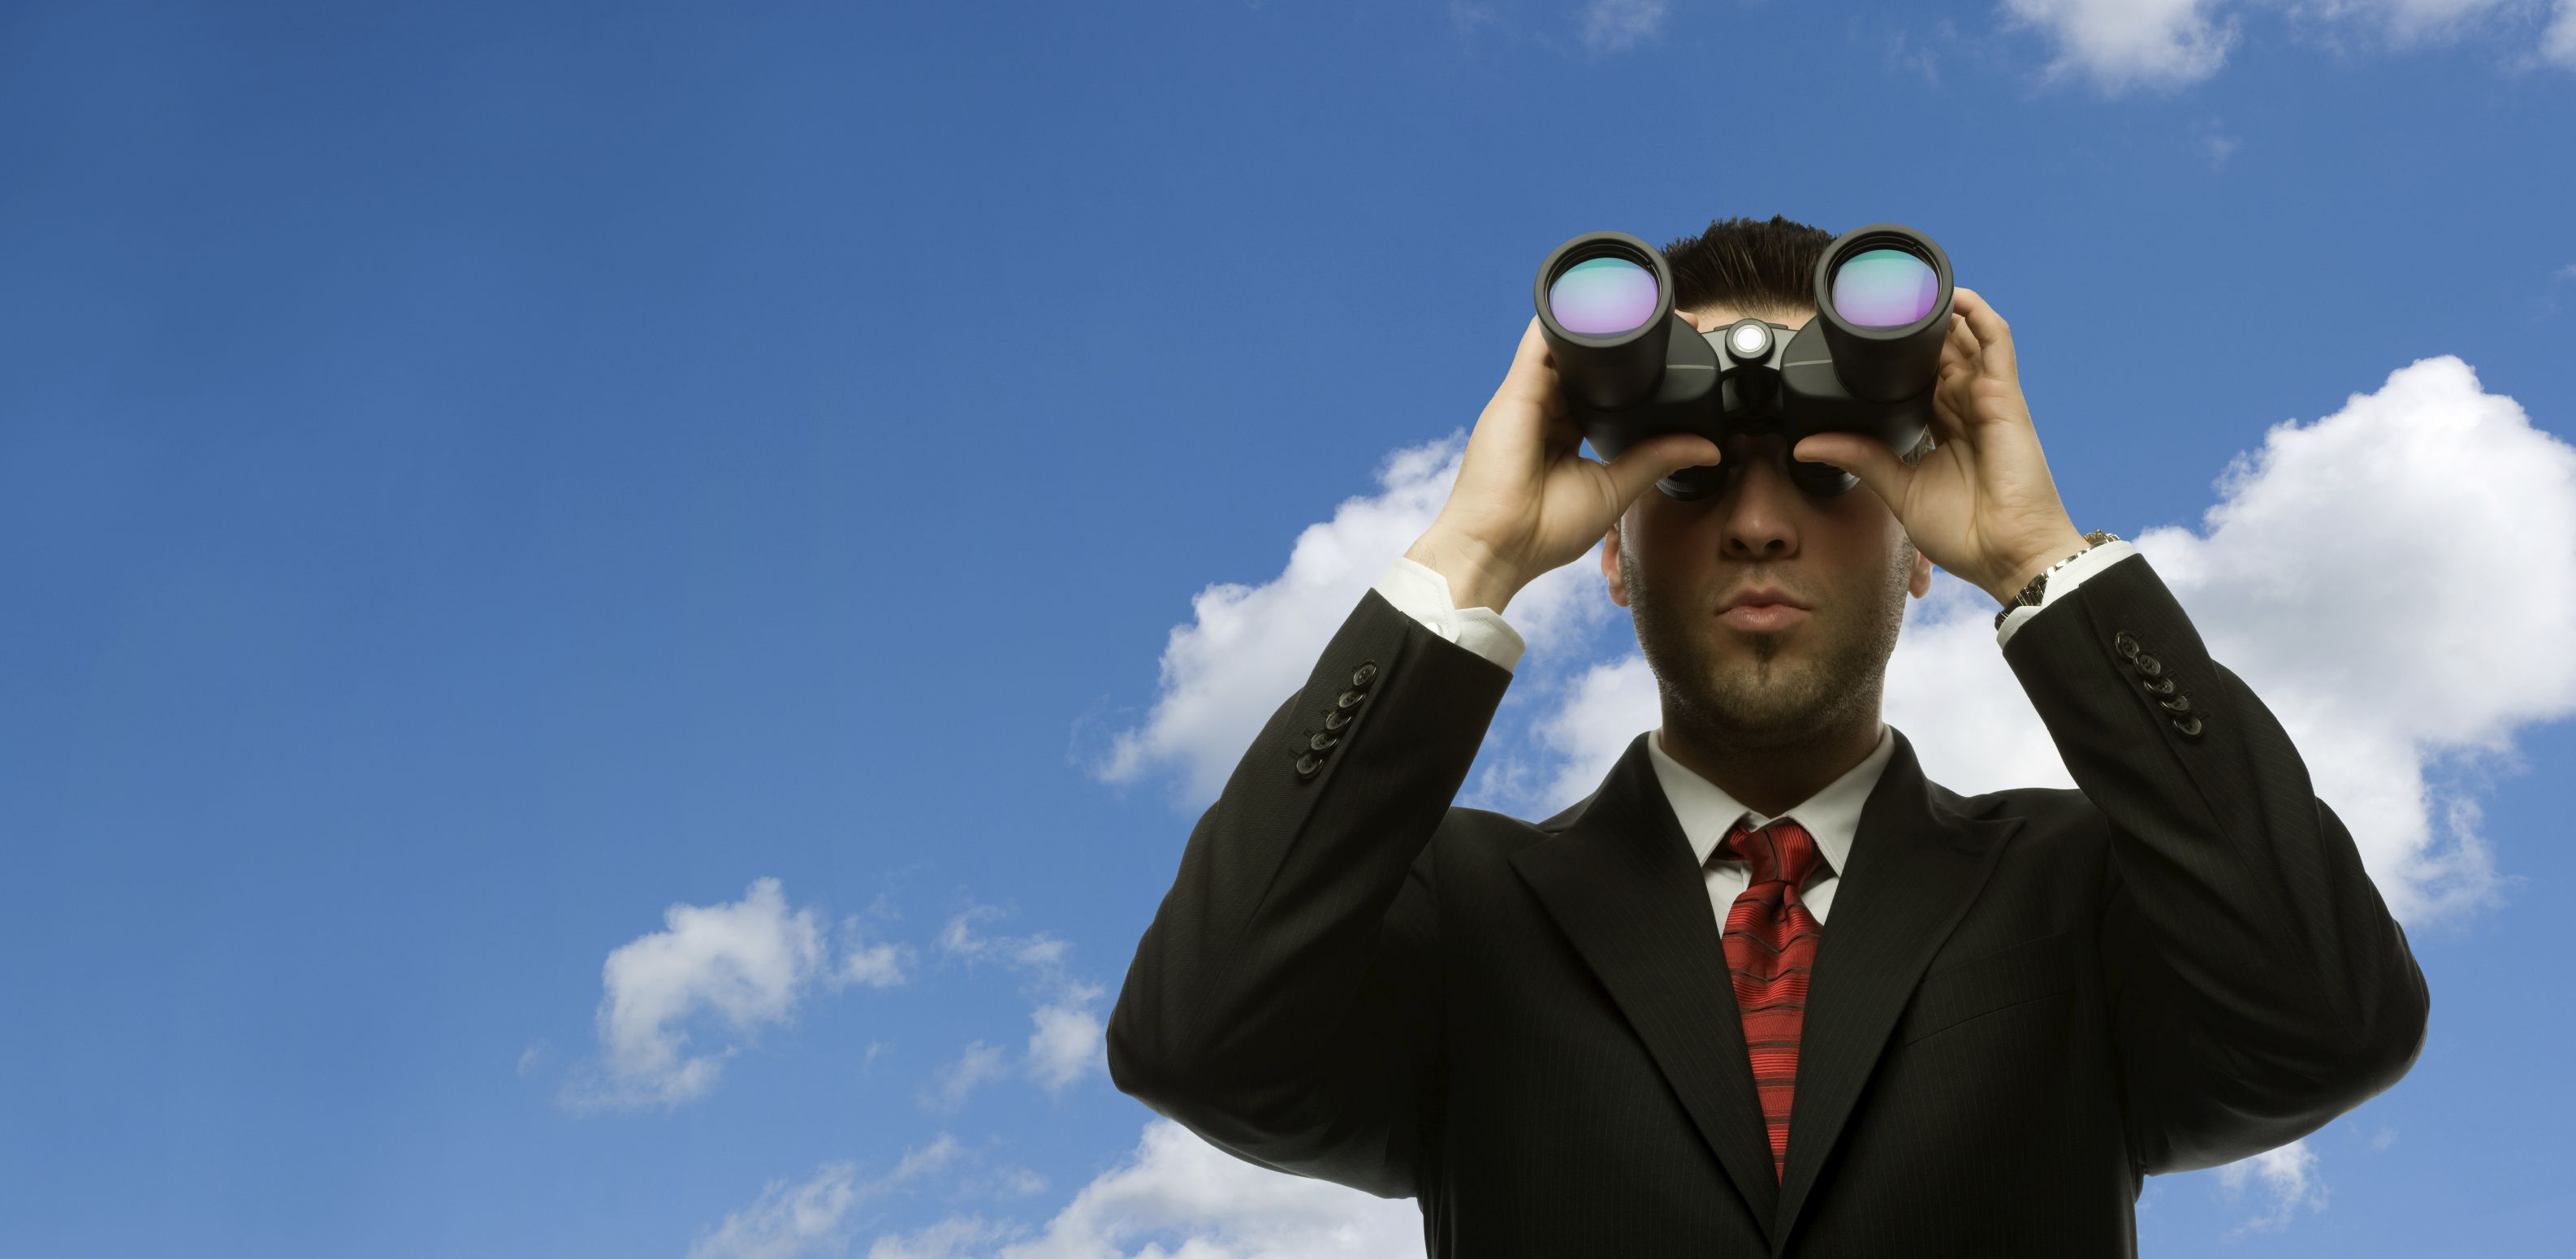 5 Characteristics to Look For When Hiring the Sales-Assist Role